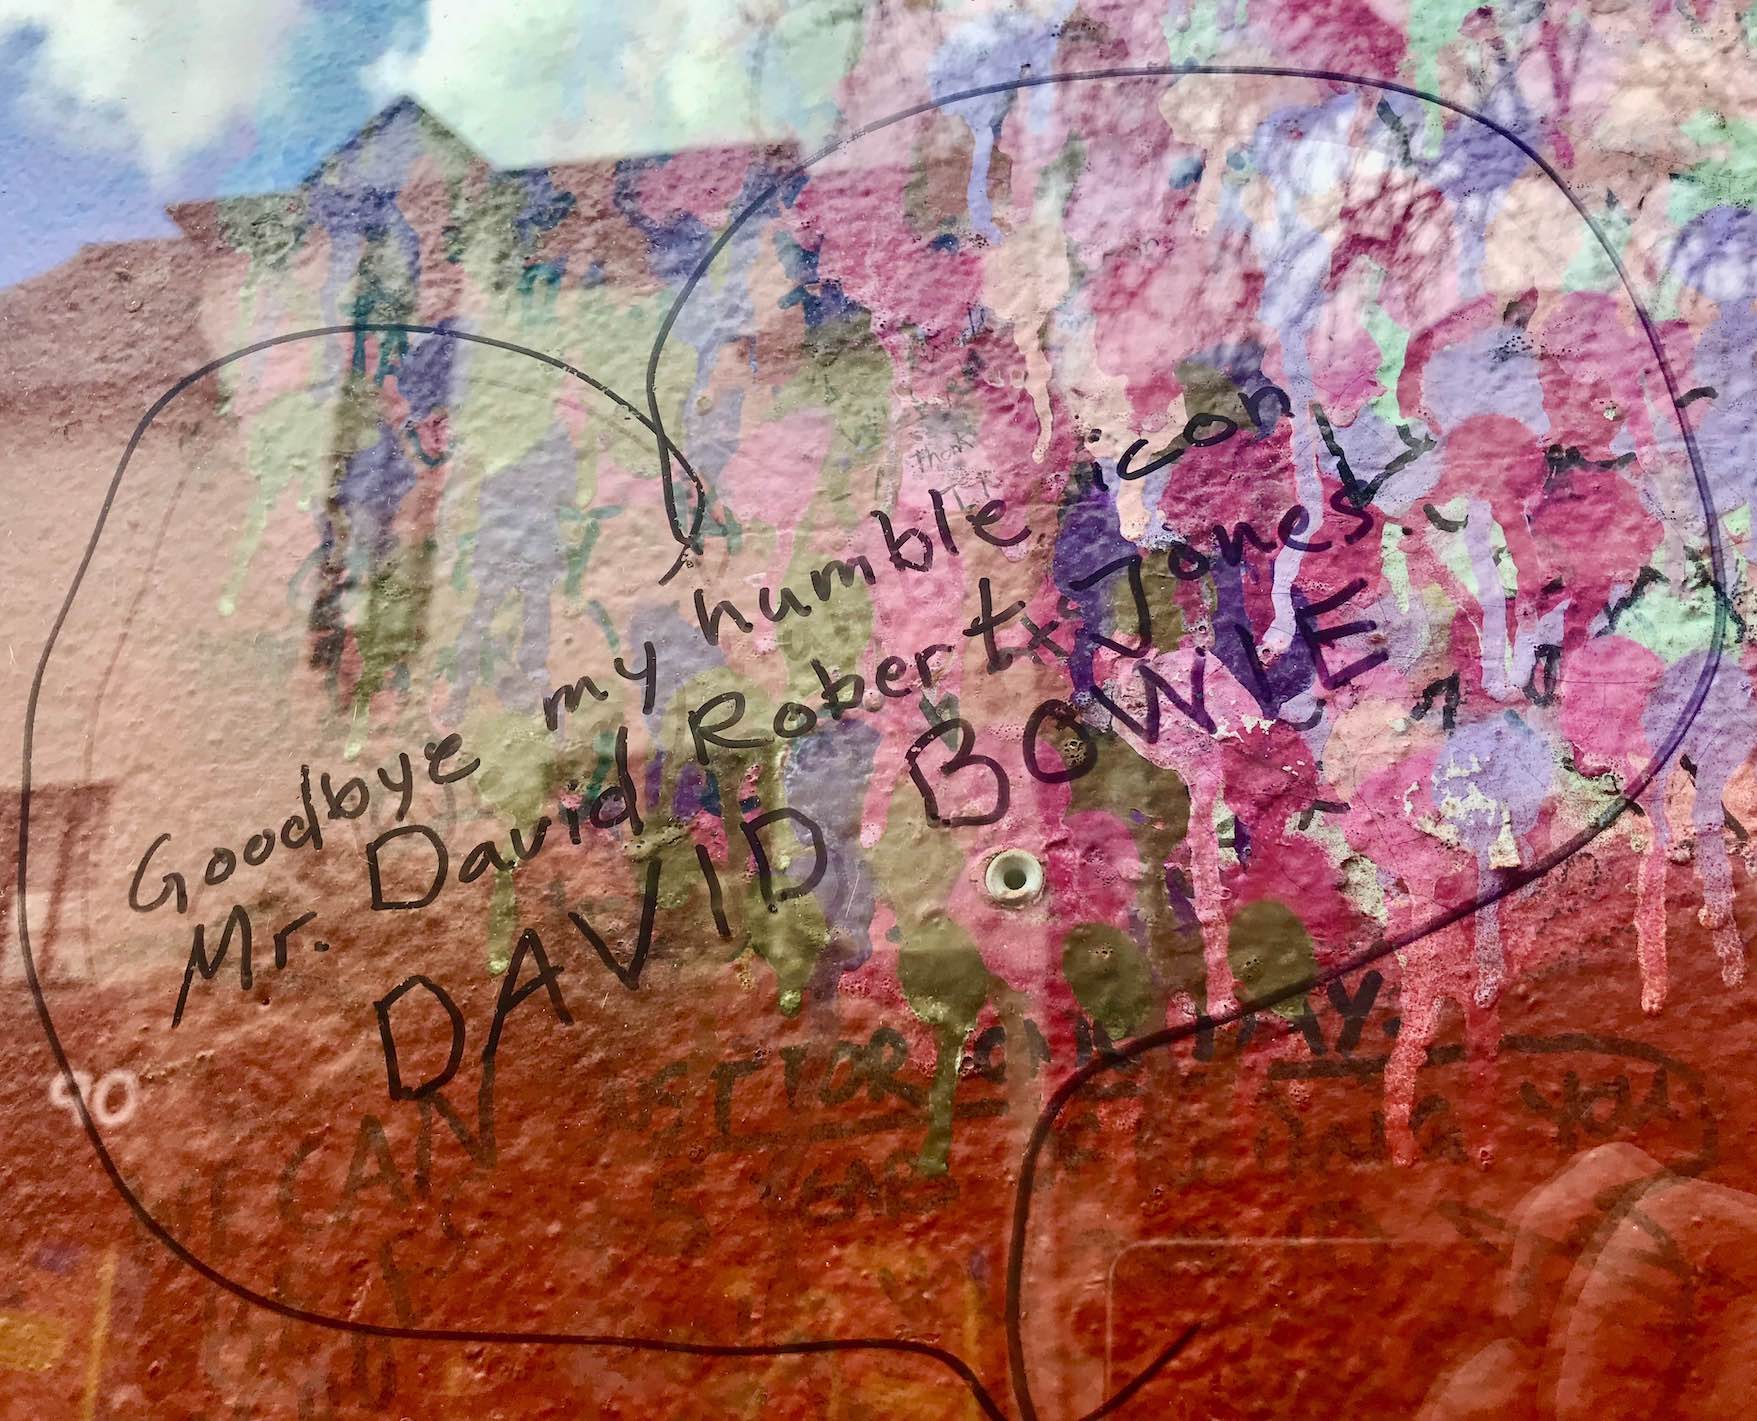 Fan tributes on The David Bowie Mural